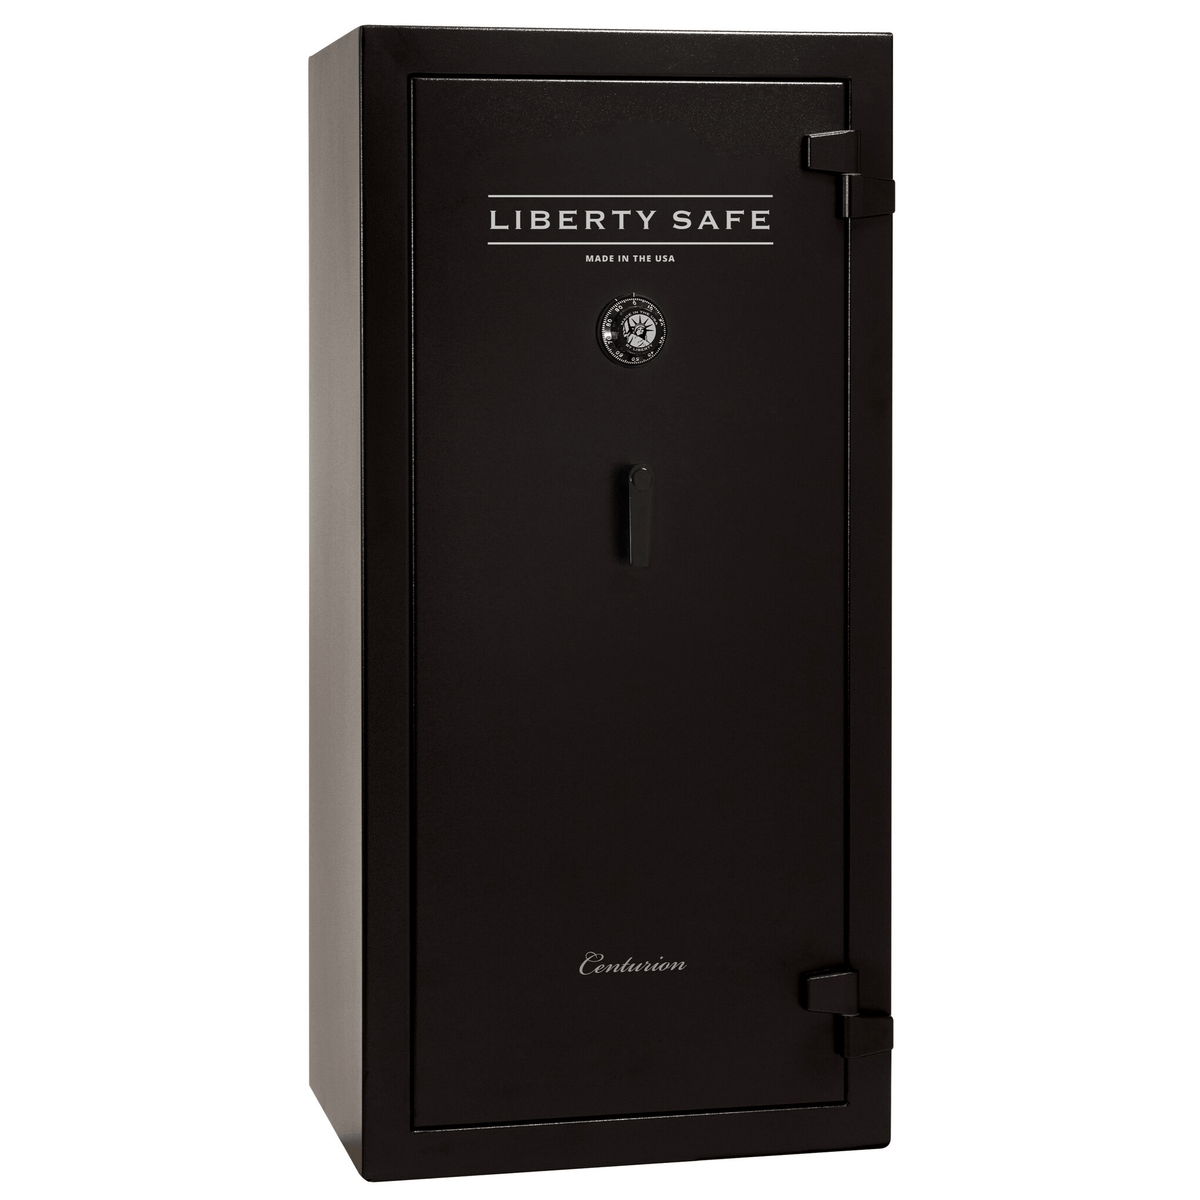 Liberty Safe Centurion 24 Textured Black Mechanical Lock